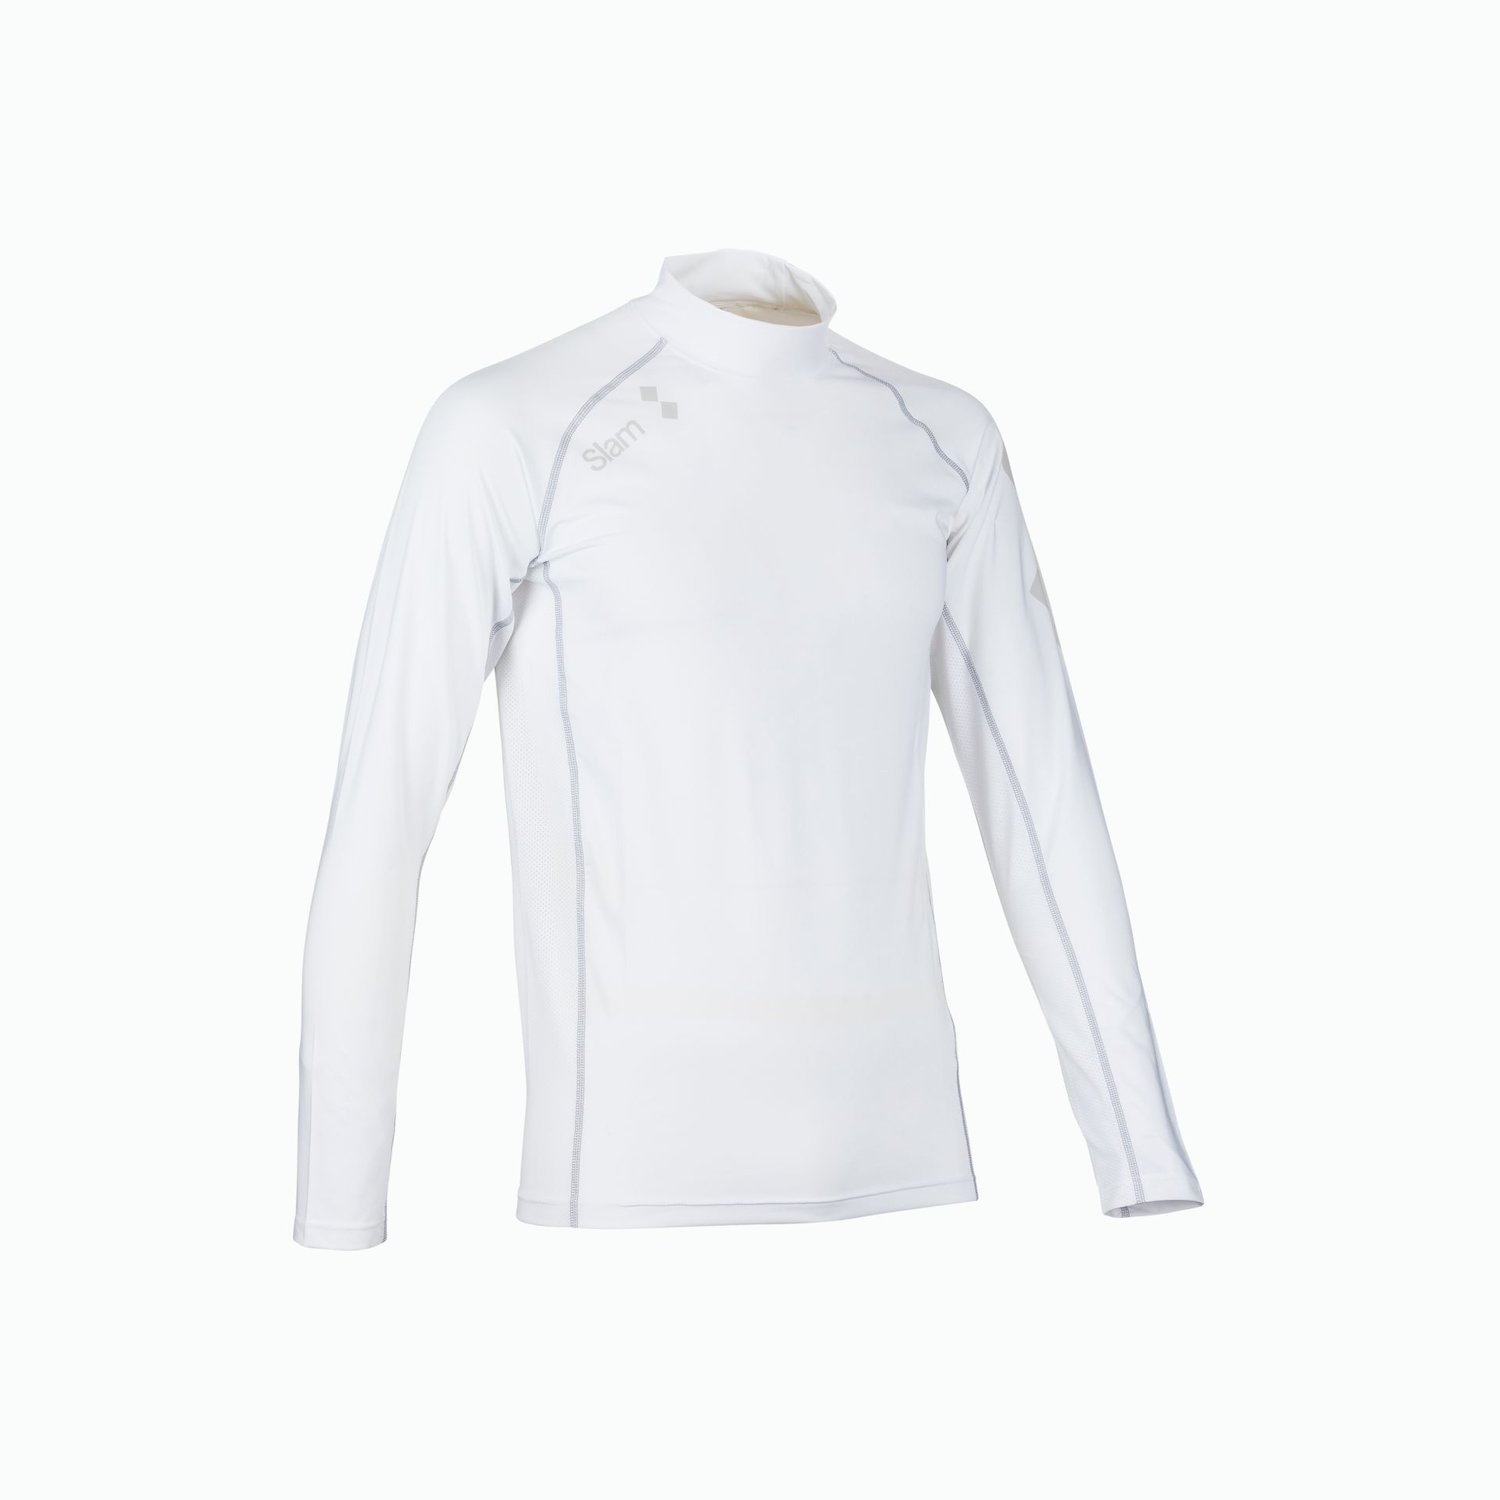 ANTI UV LYCRA TOP LS - White